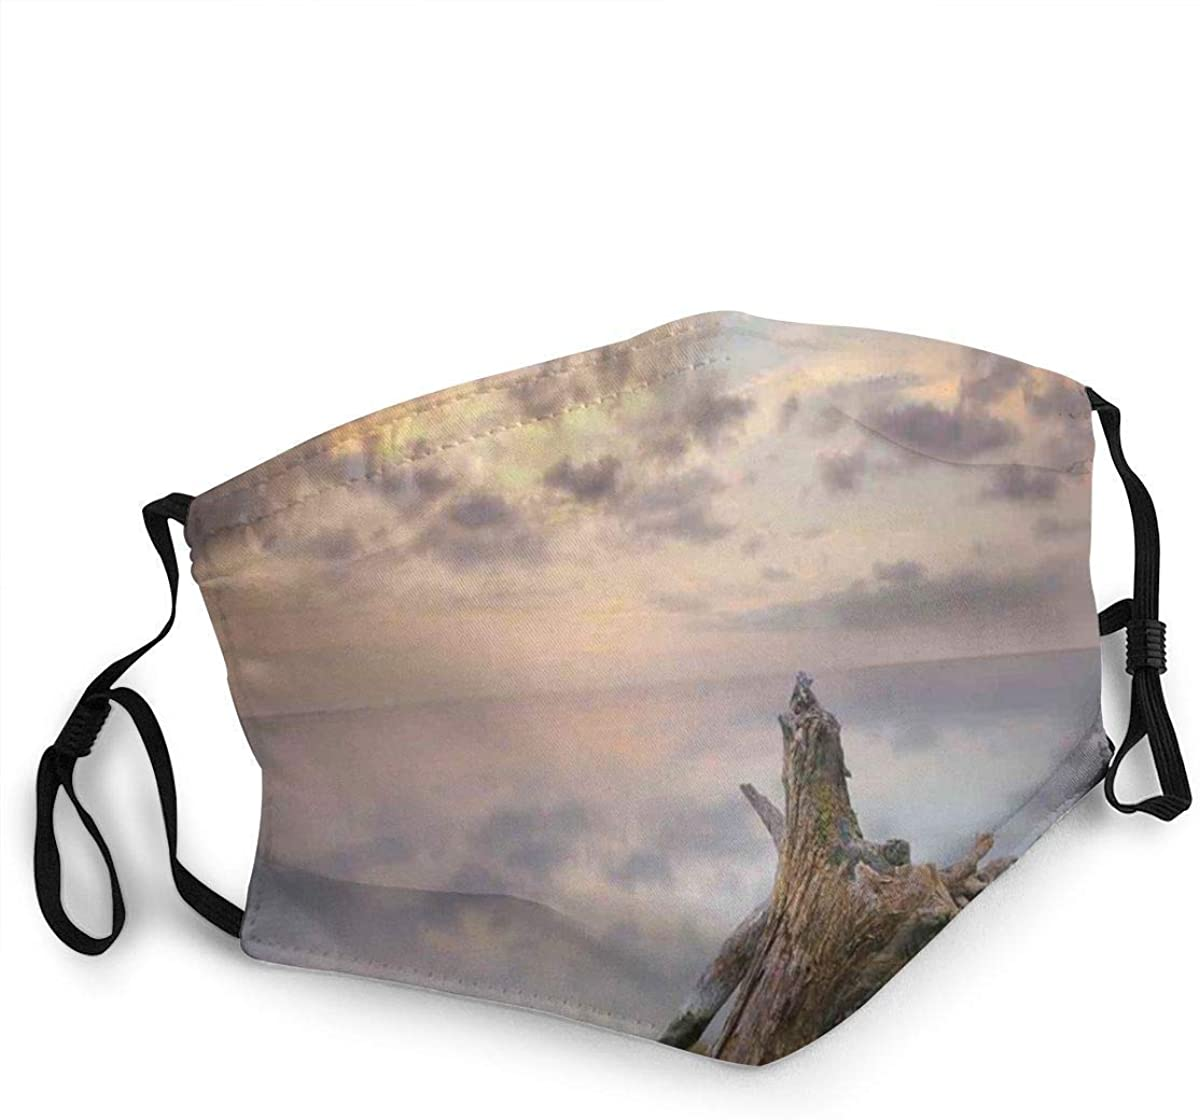 BOKUTT Facial Decorations,Sunrise On The Water And Driftwood On The Sandy Beach Digital Image,Bandana Headwear With masks-Windproof and dustproof, reusable